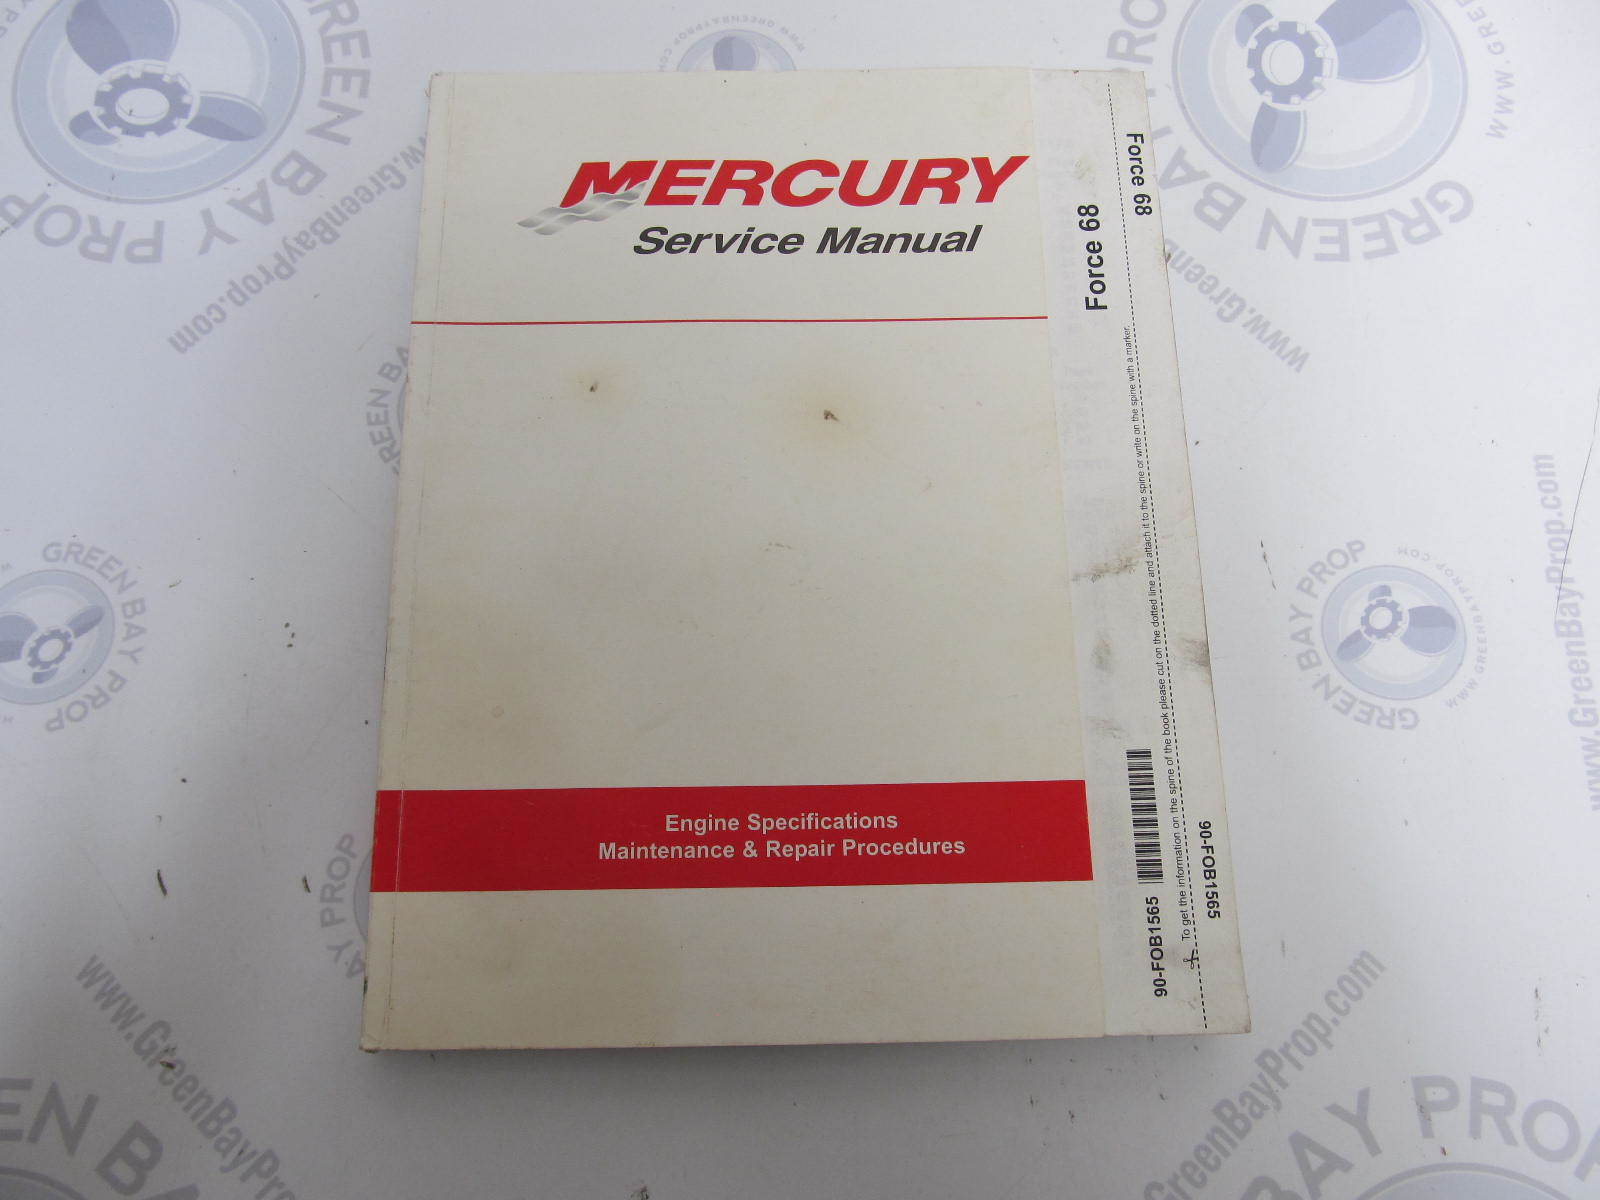 90-FOB1565 Mercury Chrysler Force Outboard Service Manual 70-150 HP  1965-1979 ...